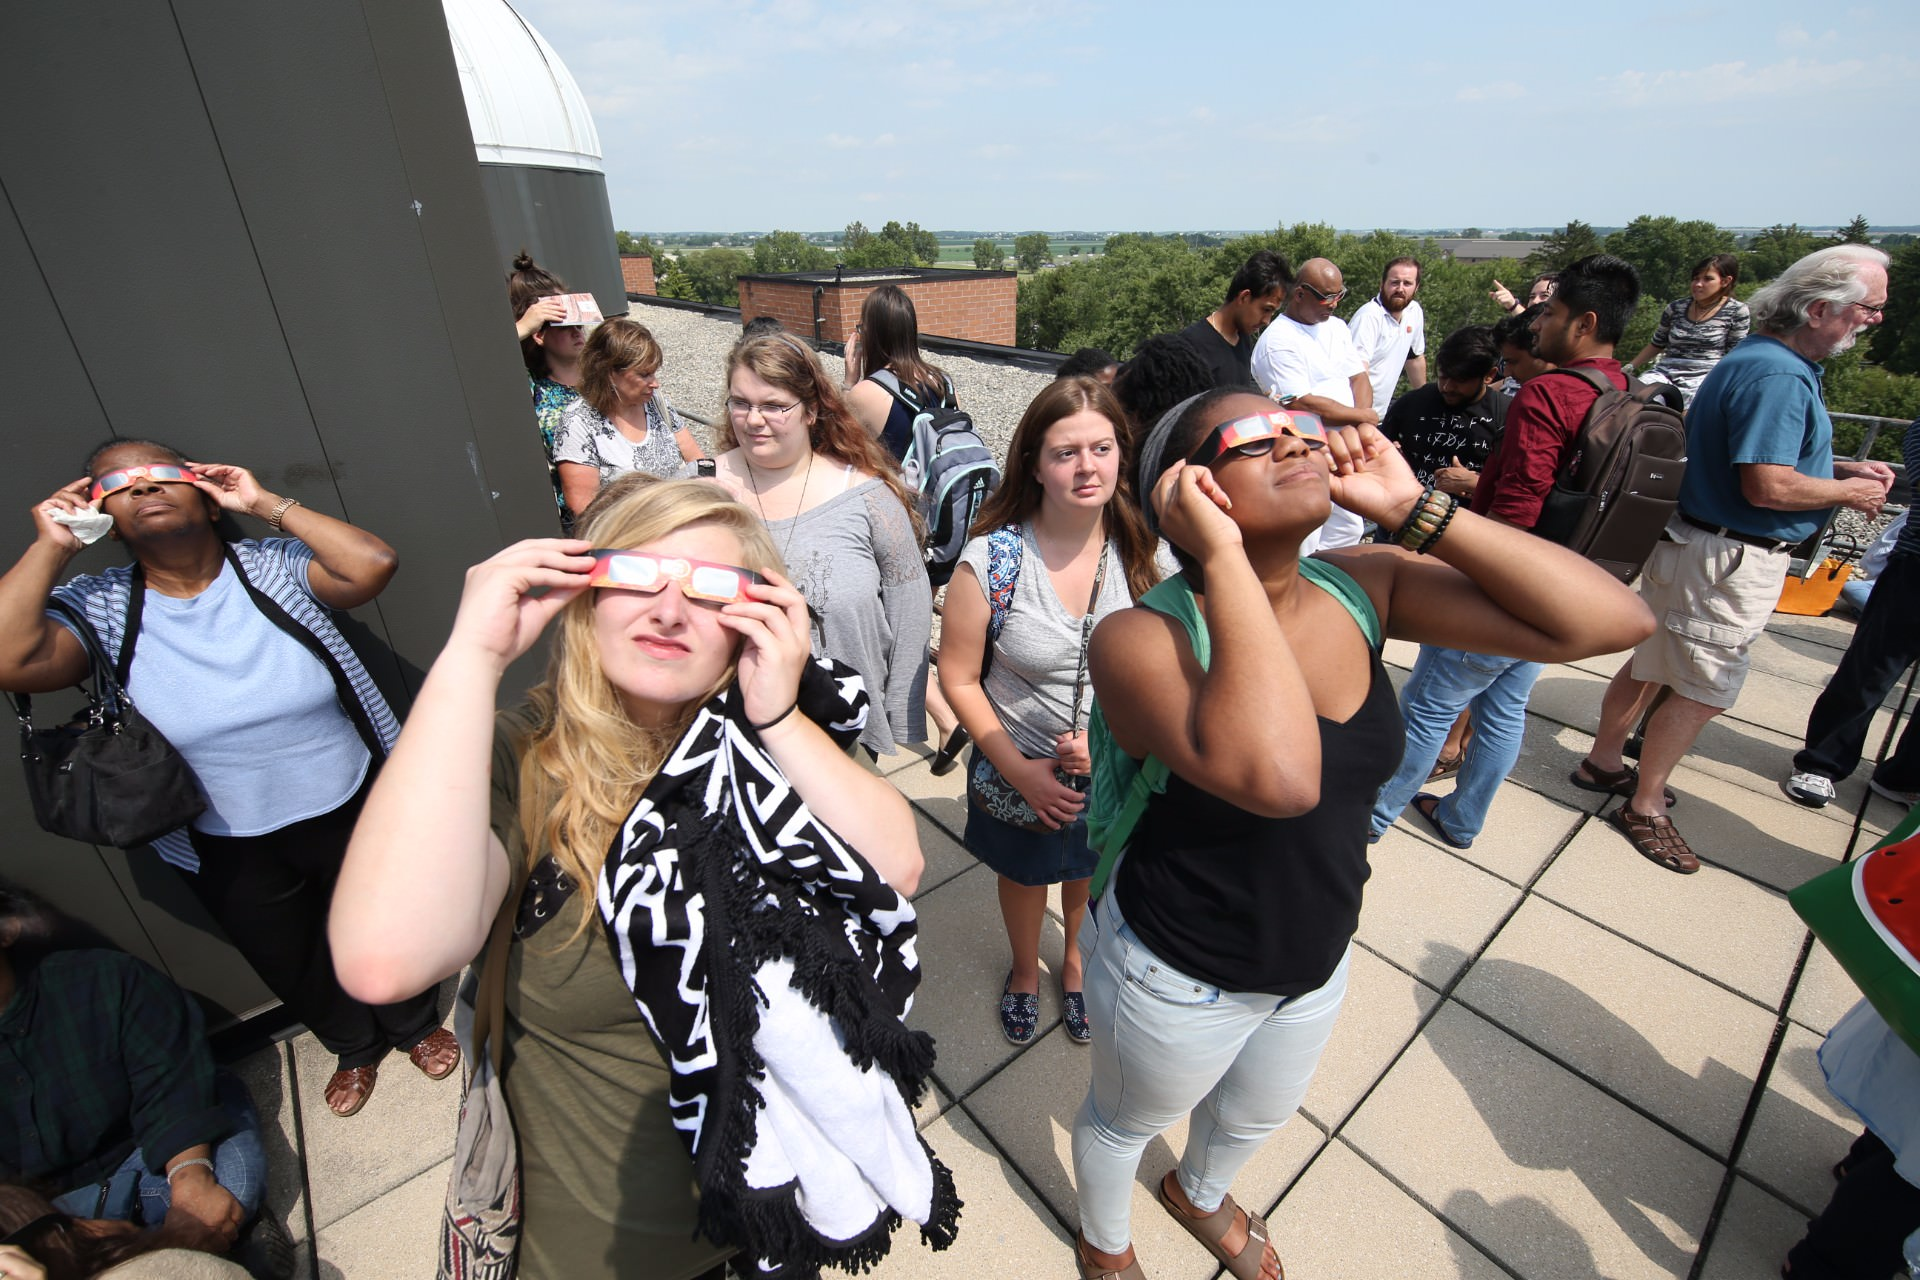 group of people looking at solar eclipse